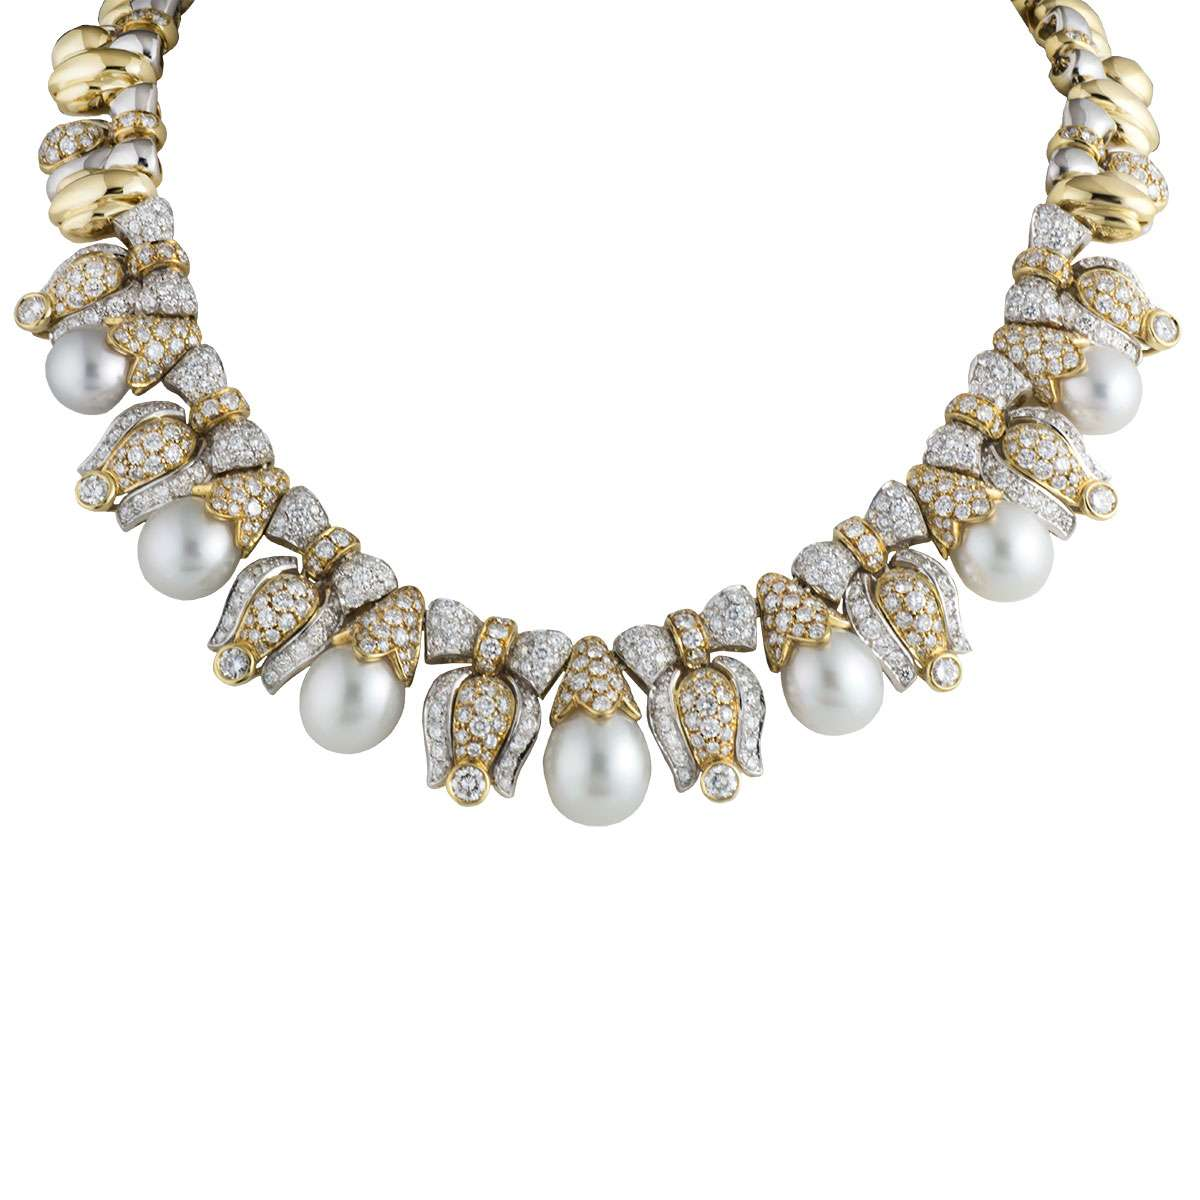 White and Yellow Gold Diamond Necklace 14.54ct